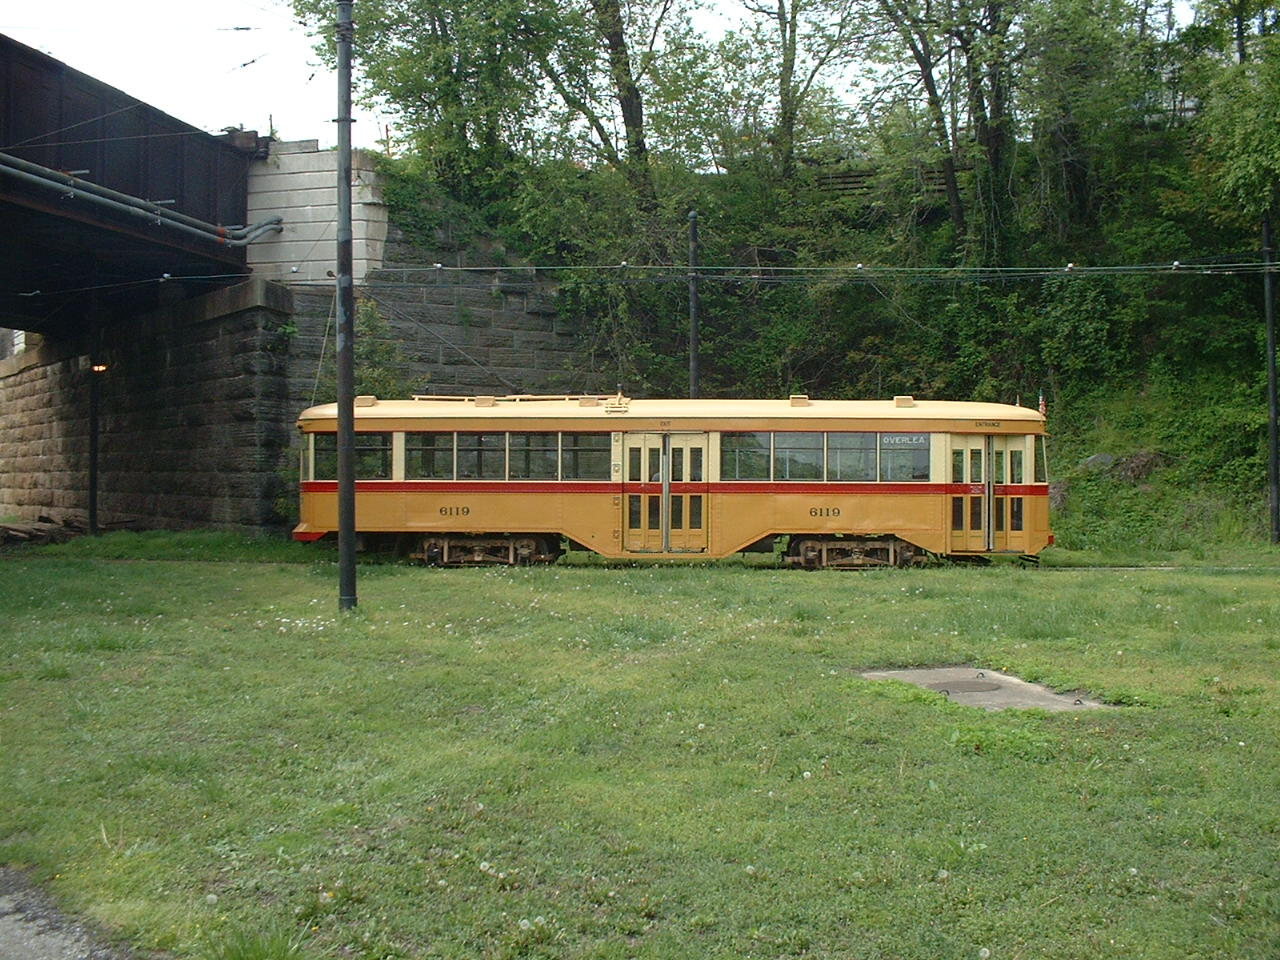 (300k, 1280x960)<br><b>Country:</b> United States<br><b>City:</b> Baltimore, MD<br><b>System:</b> Baltimore Streetcar Museum <br><b>Car:</b>  6119 <br><b>Photo by:</b> Dan Lawrence<br><b>Date:</b> 4/27/2002<br><b>Notes:</b> BSM 6119 at North Avenue Loop<br><b>Viewed (this week/total):</b> 0 / 4104